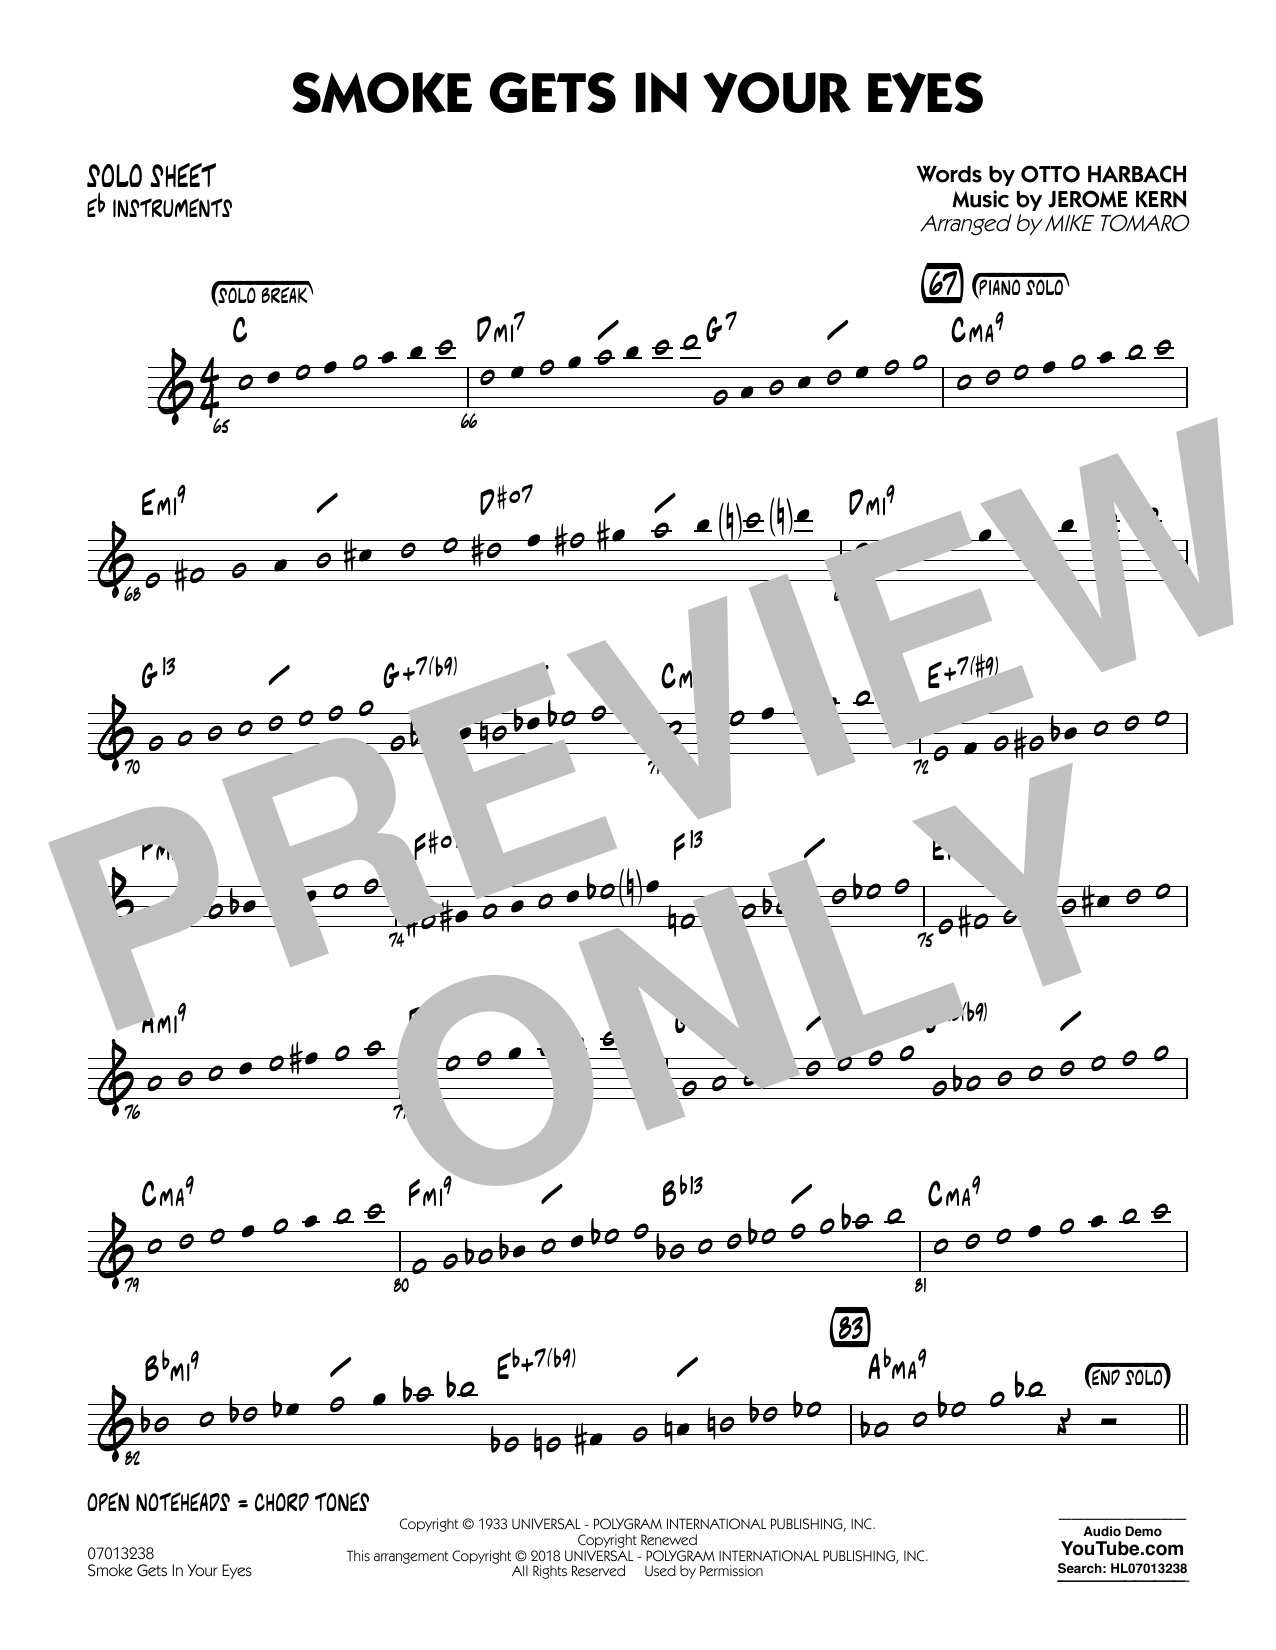 The Platters Smoke Gets In Your Eyes (arr. Mike Tomaro) - Eb Solo Sheet sheet music notes and chords. Download Printable PDF.